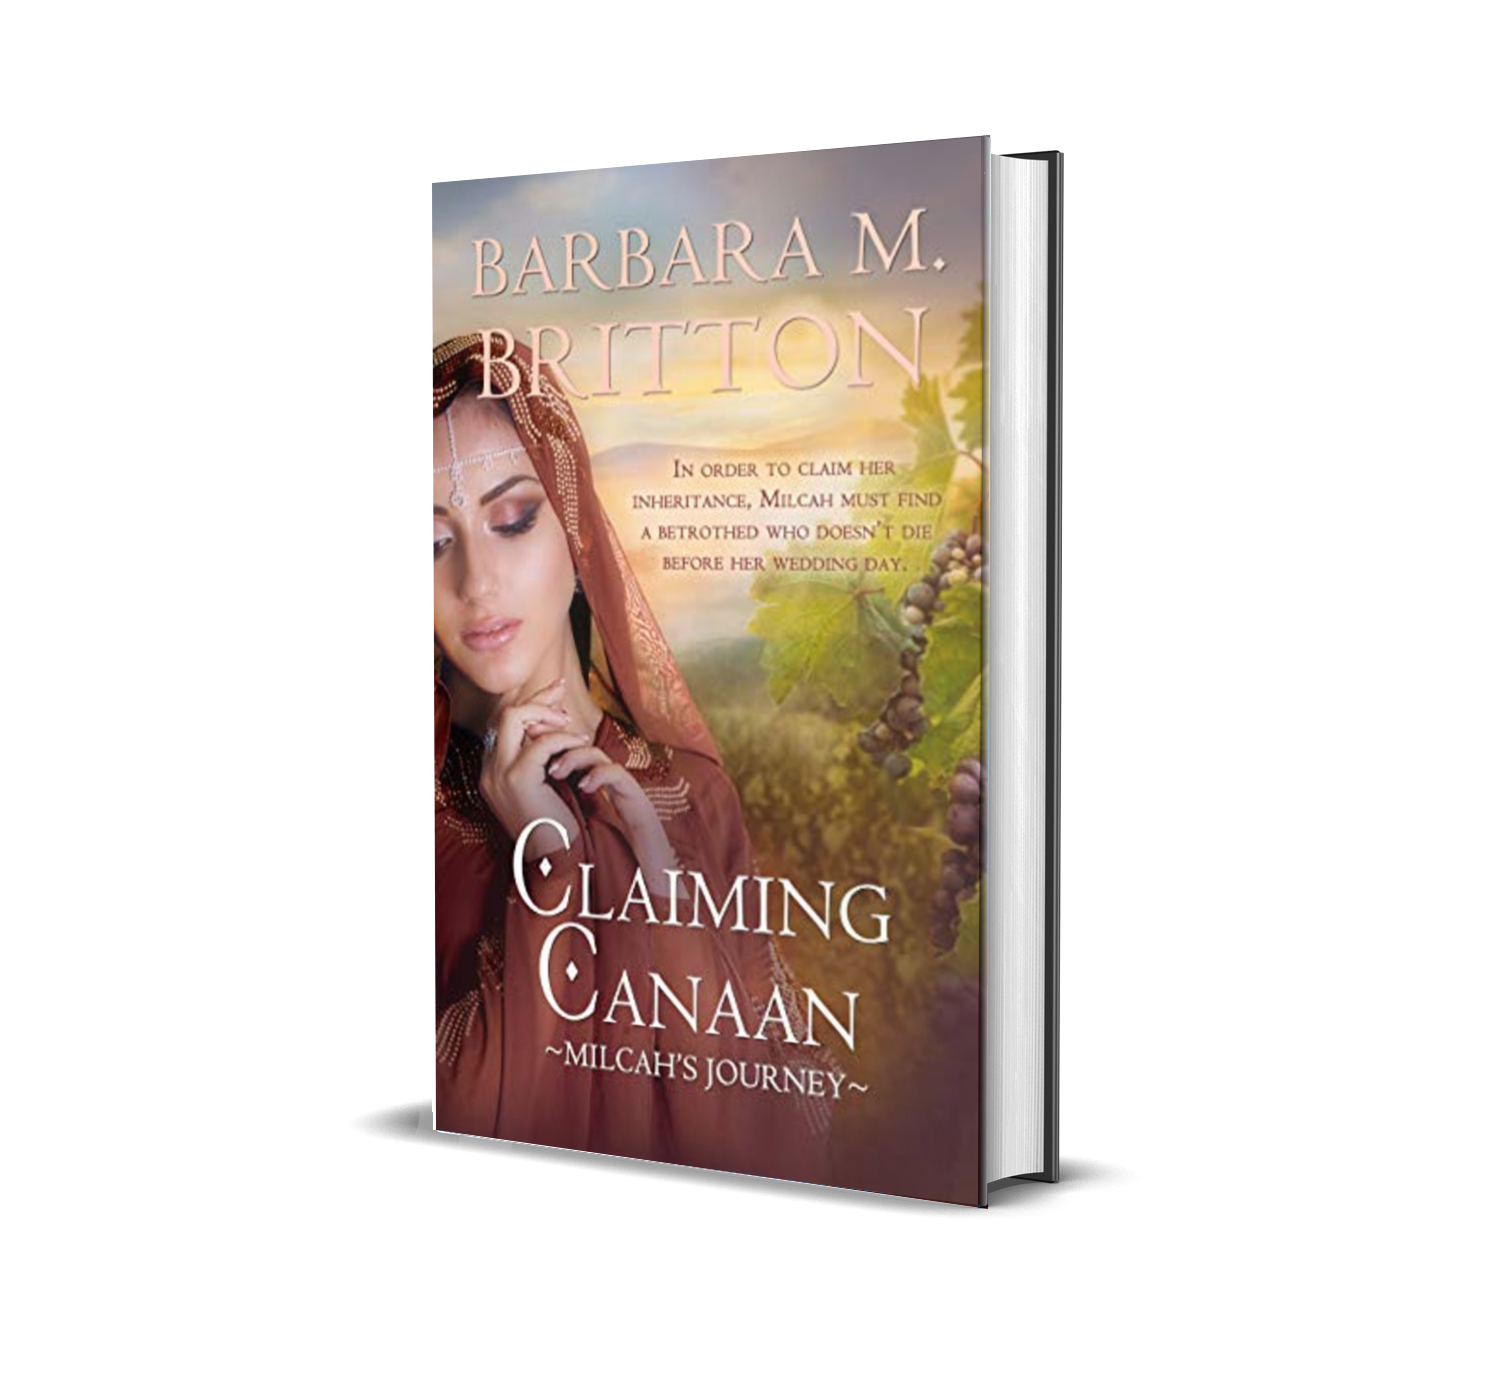 Claiming Canaan: Milcah's Journey by Barbara M. Britton